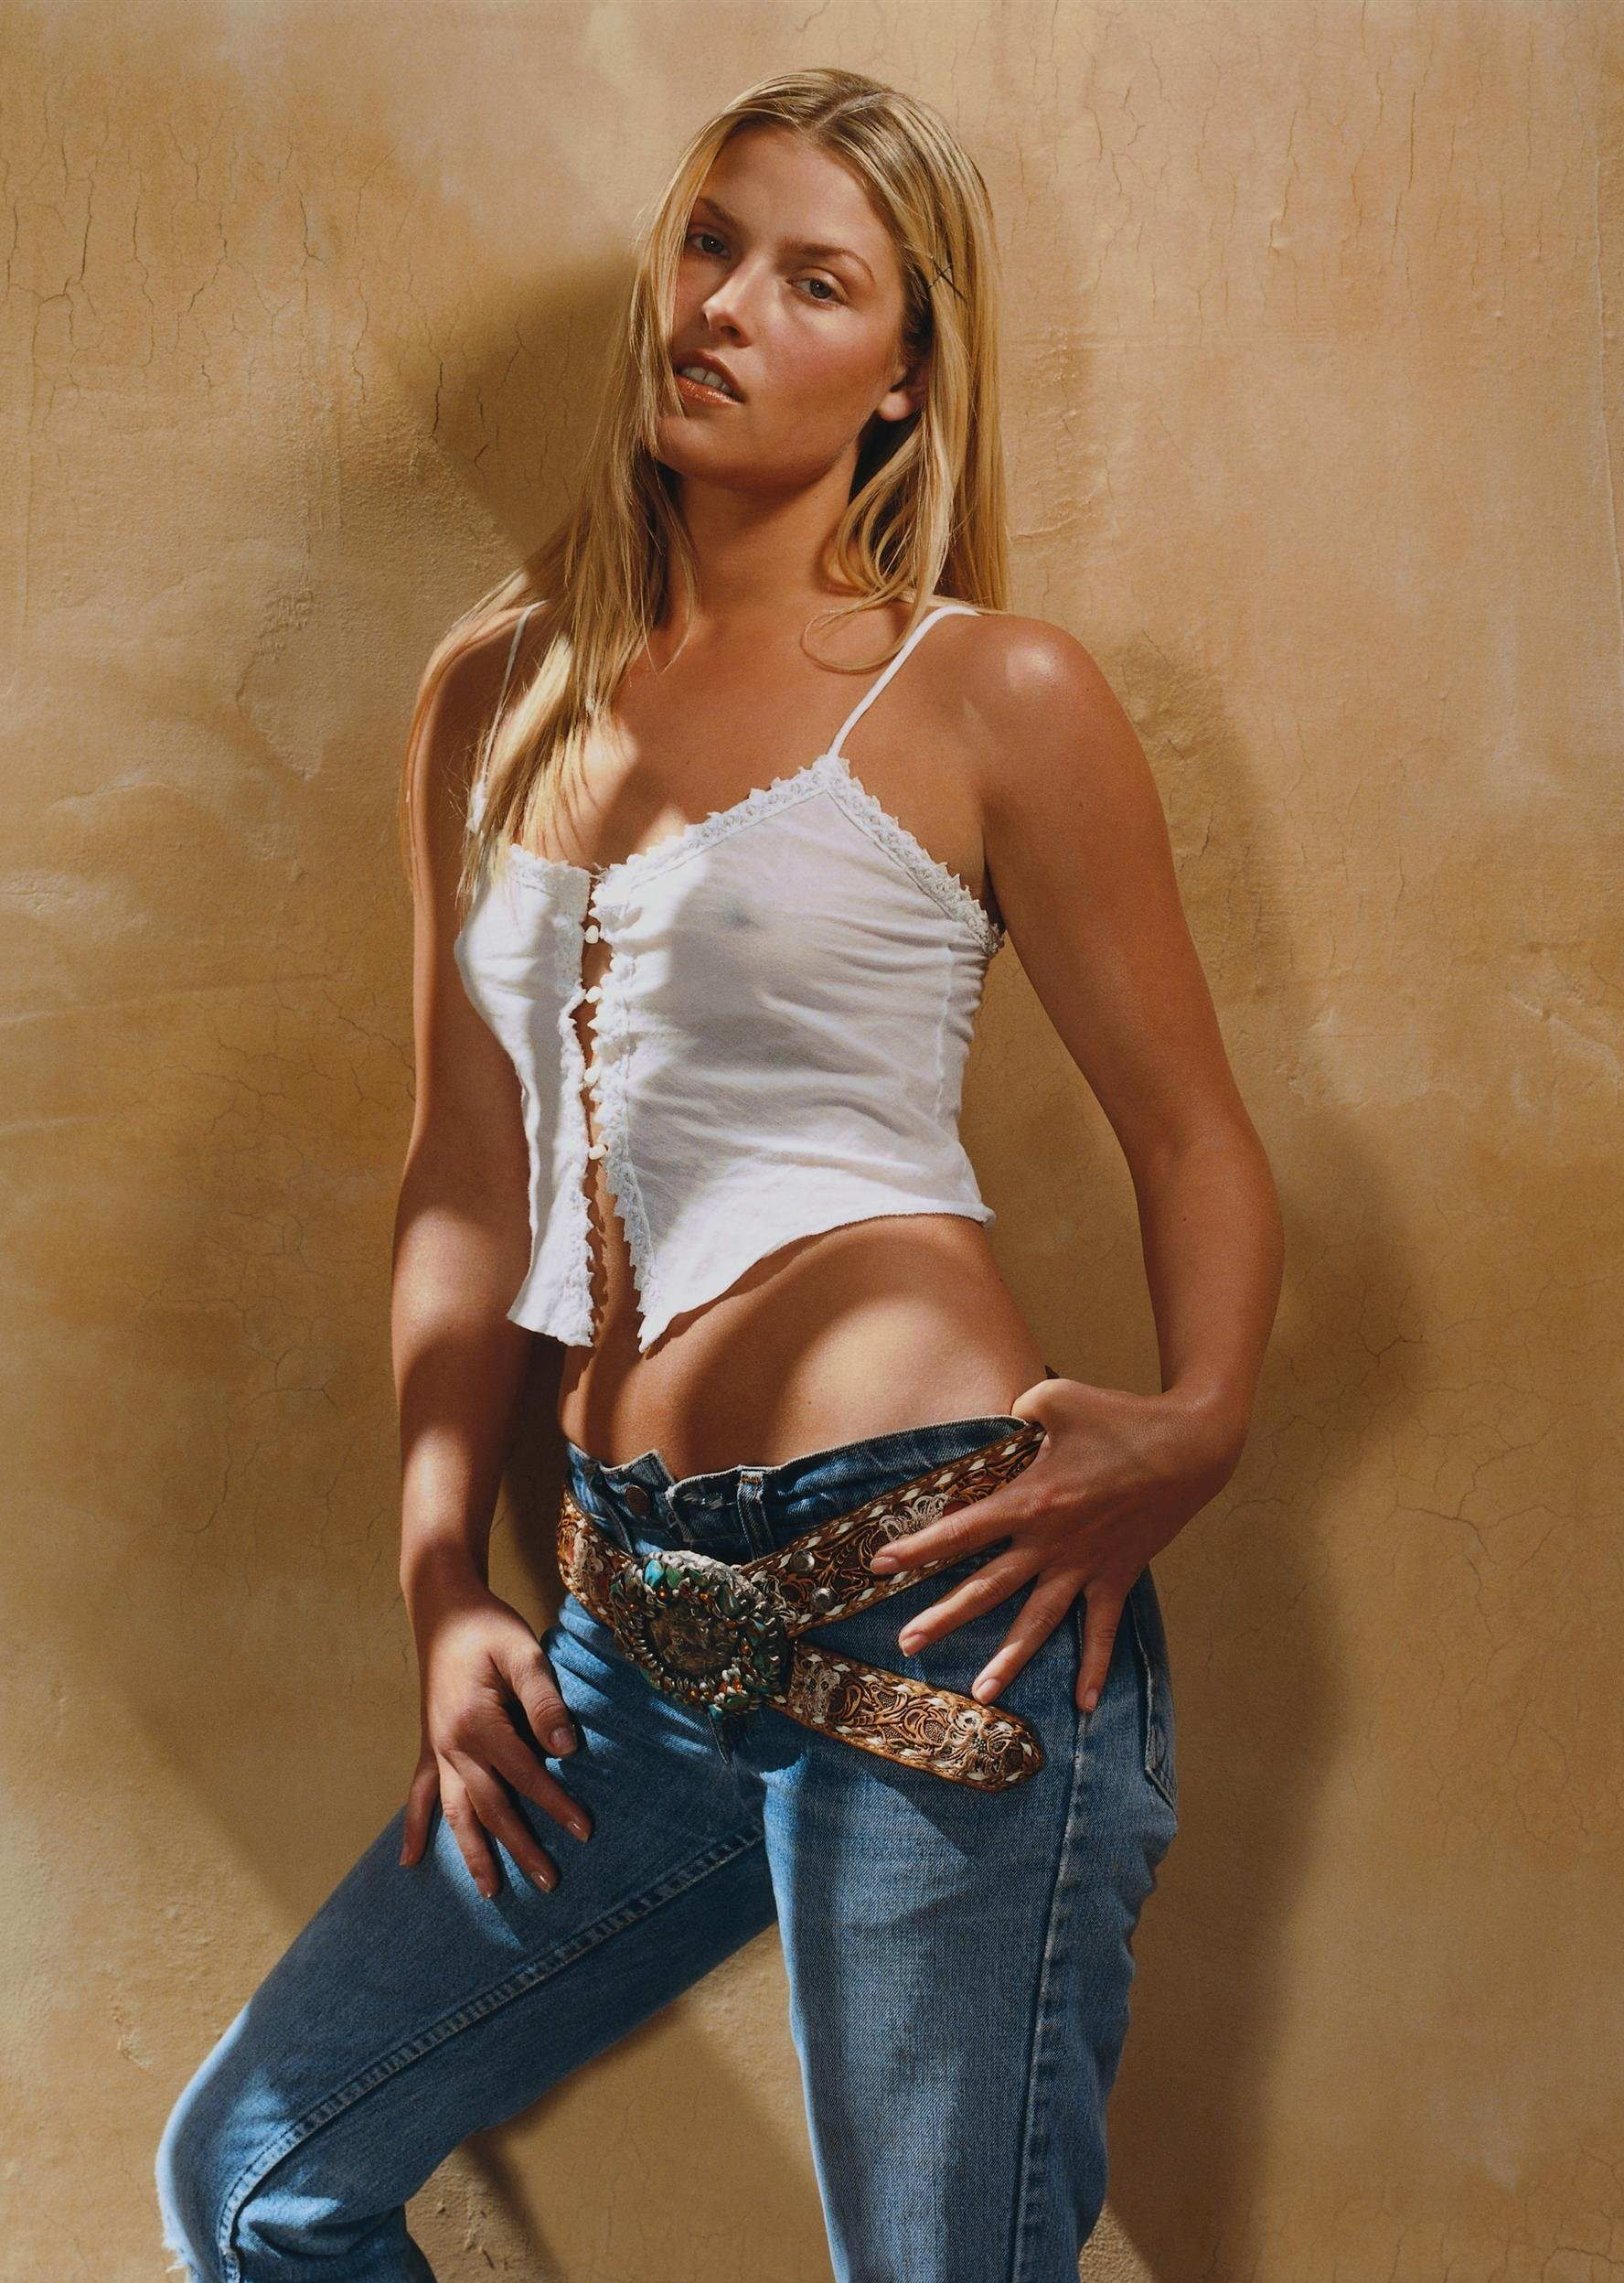 The Beautiful Ali Larter Trendy Fashion While Modelling In